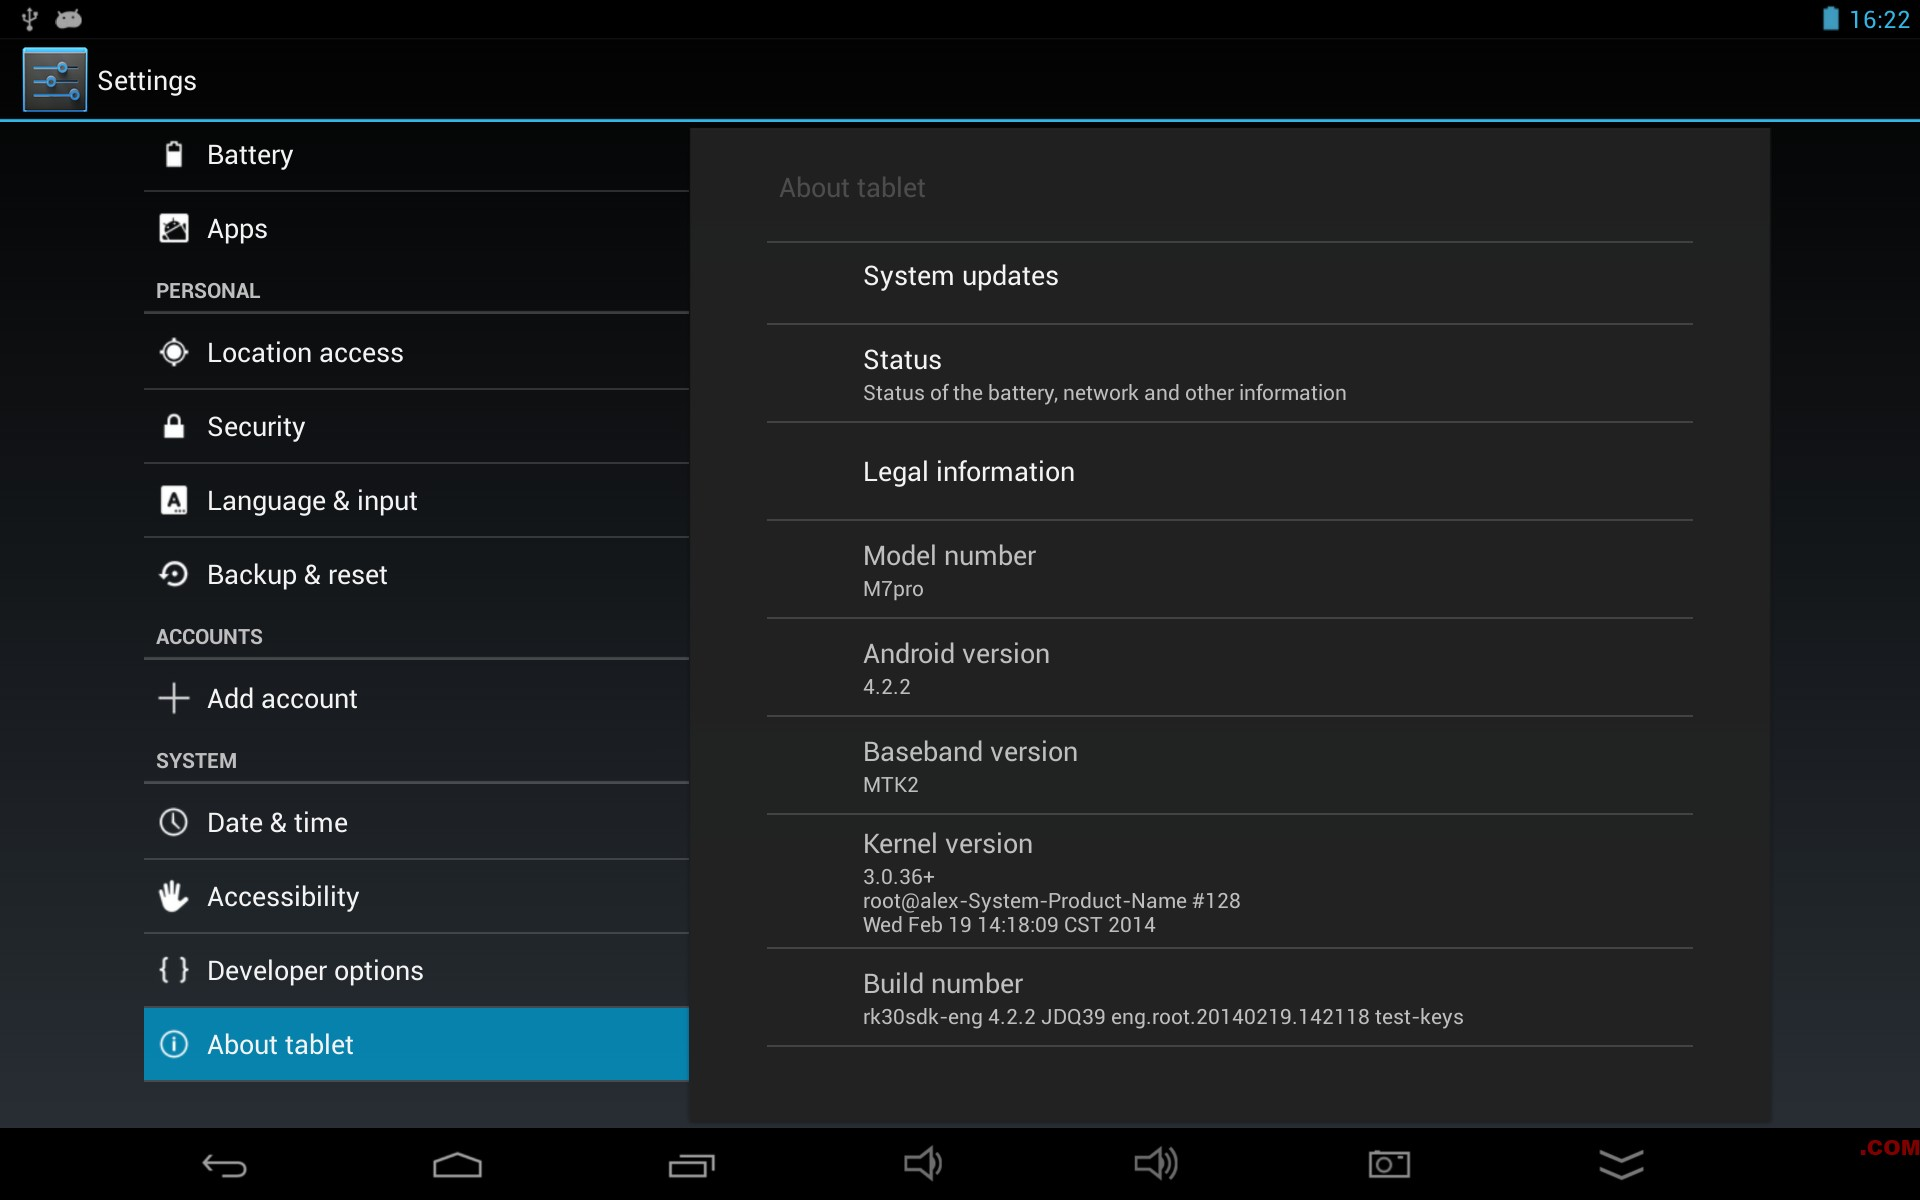 pipo_m7_pro_fw_20140219_settings_about.png